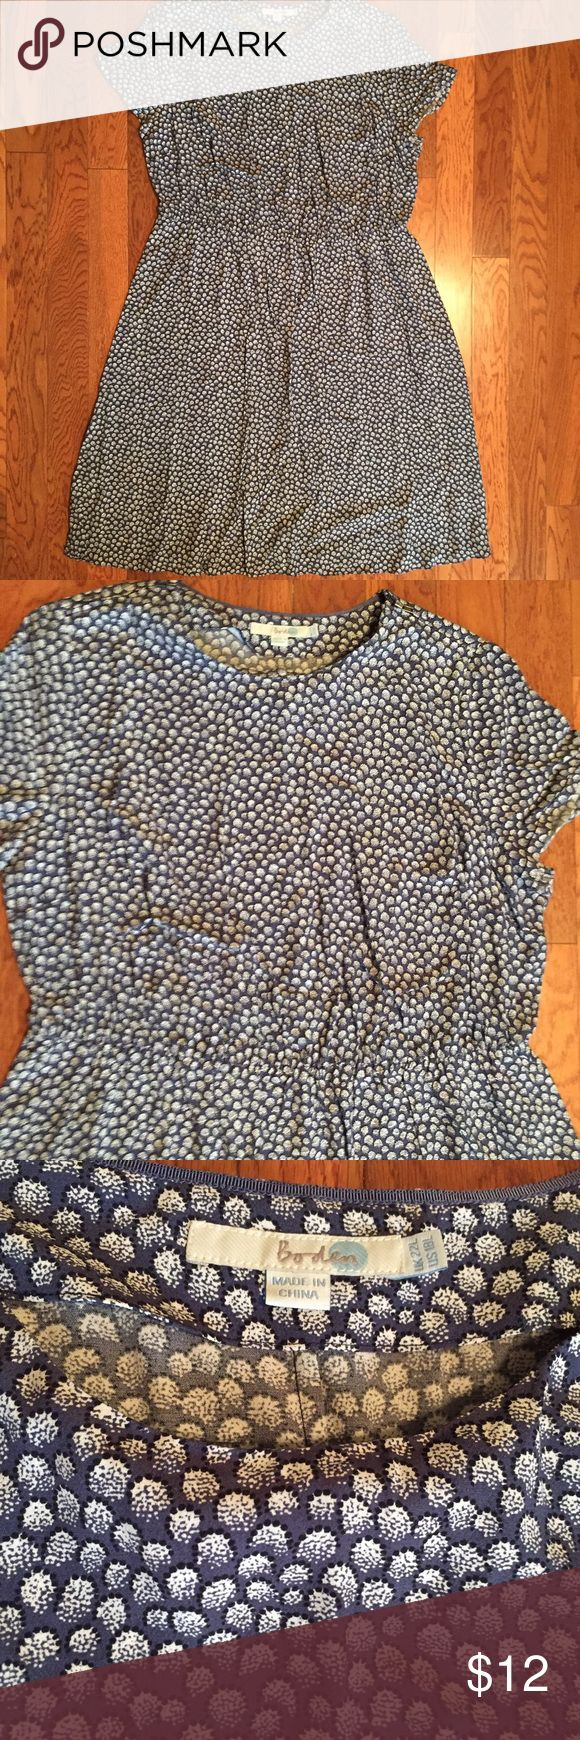 "Boden Dress Boden cap sleeve flowy, light weight dress. Slate blue with white and navy ""puff"" print detail. Zippers on both shoulders. Measures 46 1/2"" from shoulder to bottom hem. Size 18L. Boden Dresses"